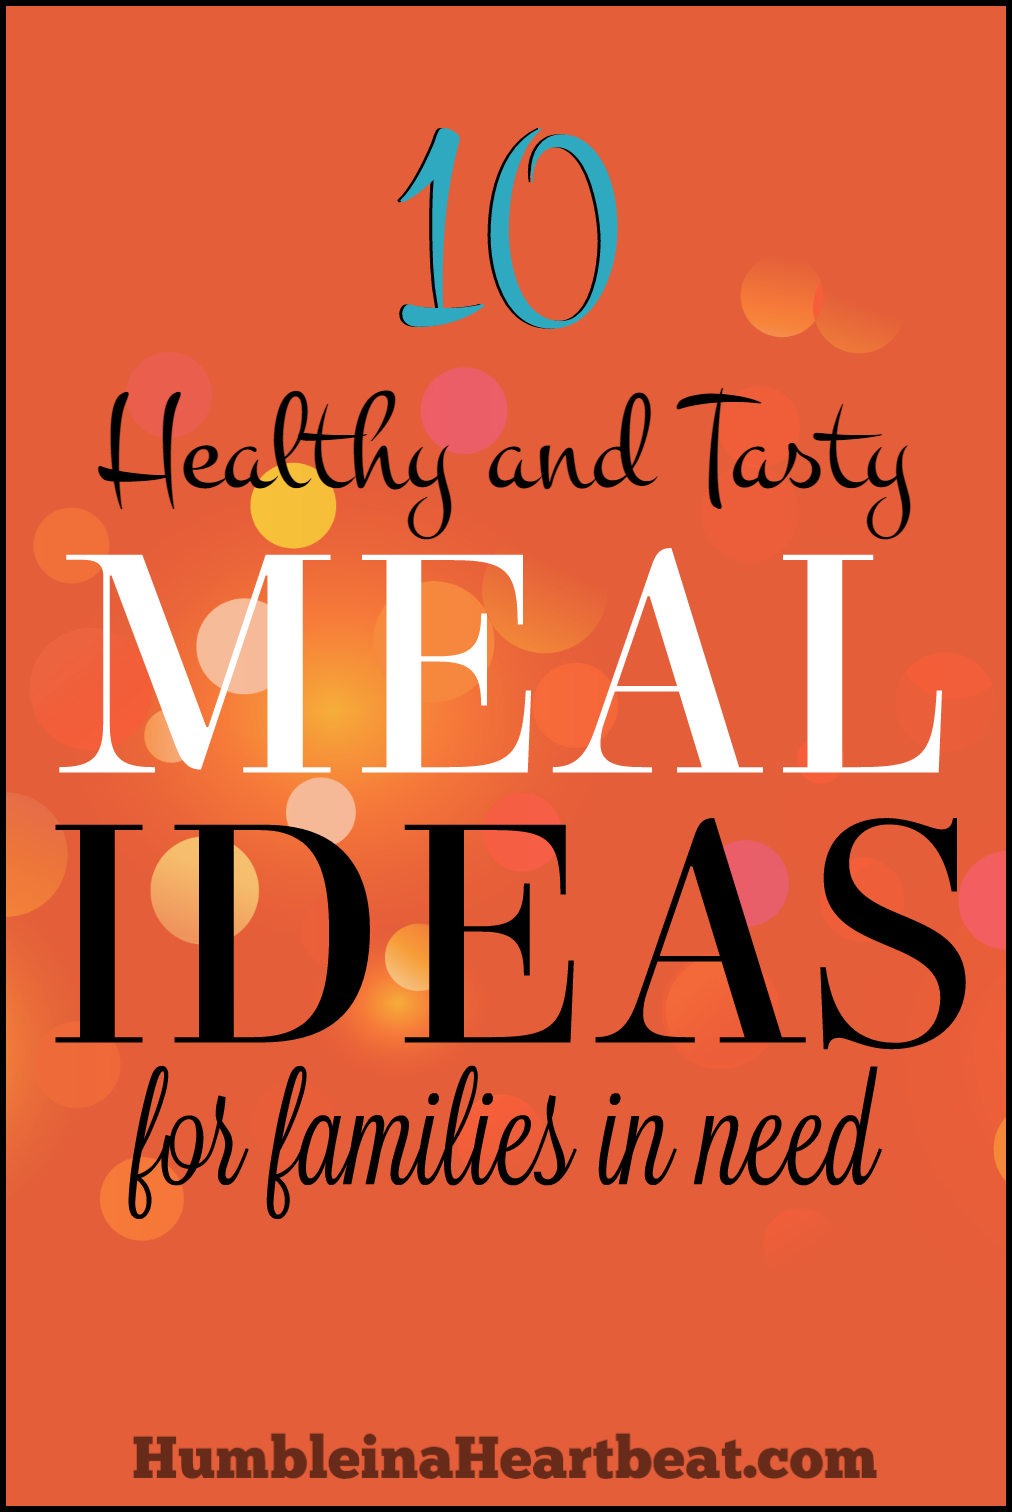 Plumb out of ideas for a meal you can take to a family in need? Look no further! These 10 healthy and tasty meal ideas are just what you are looking for!